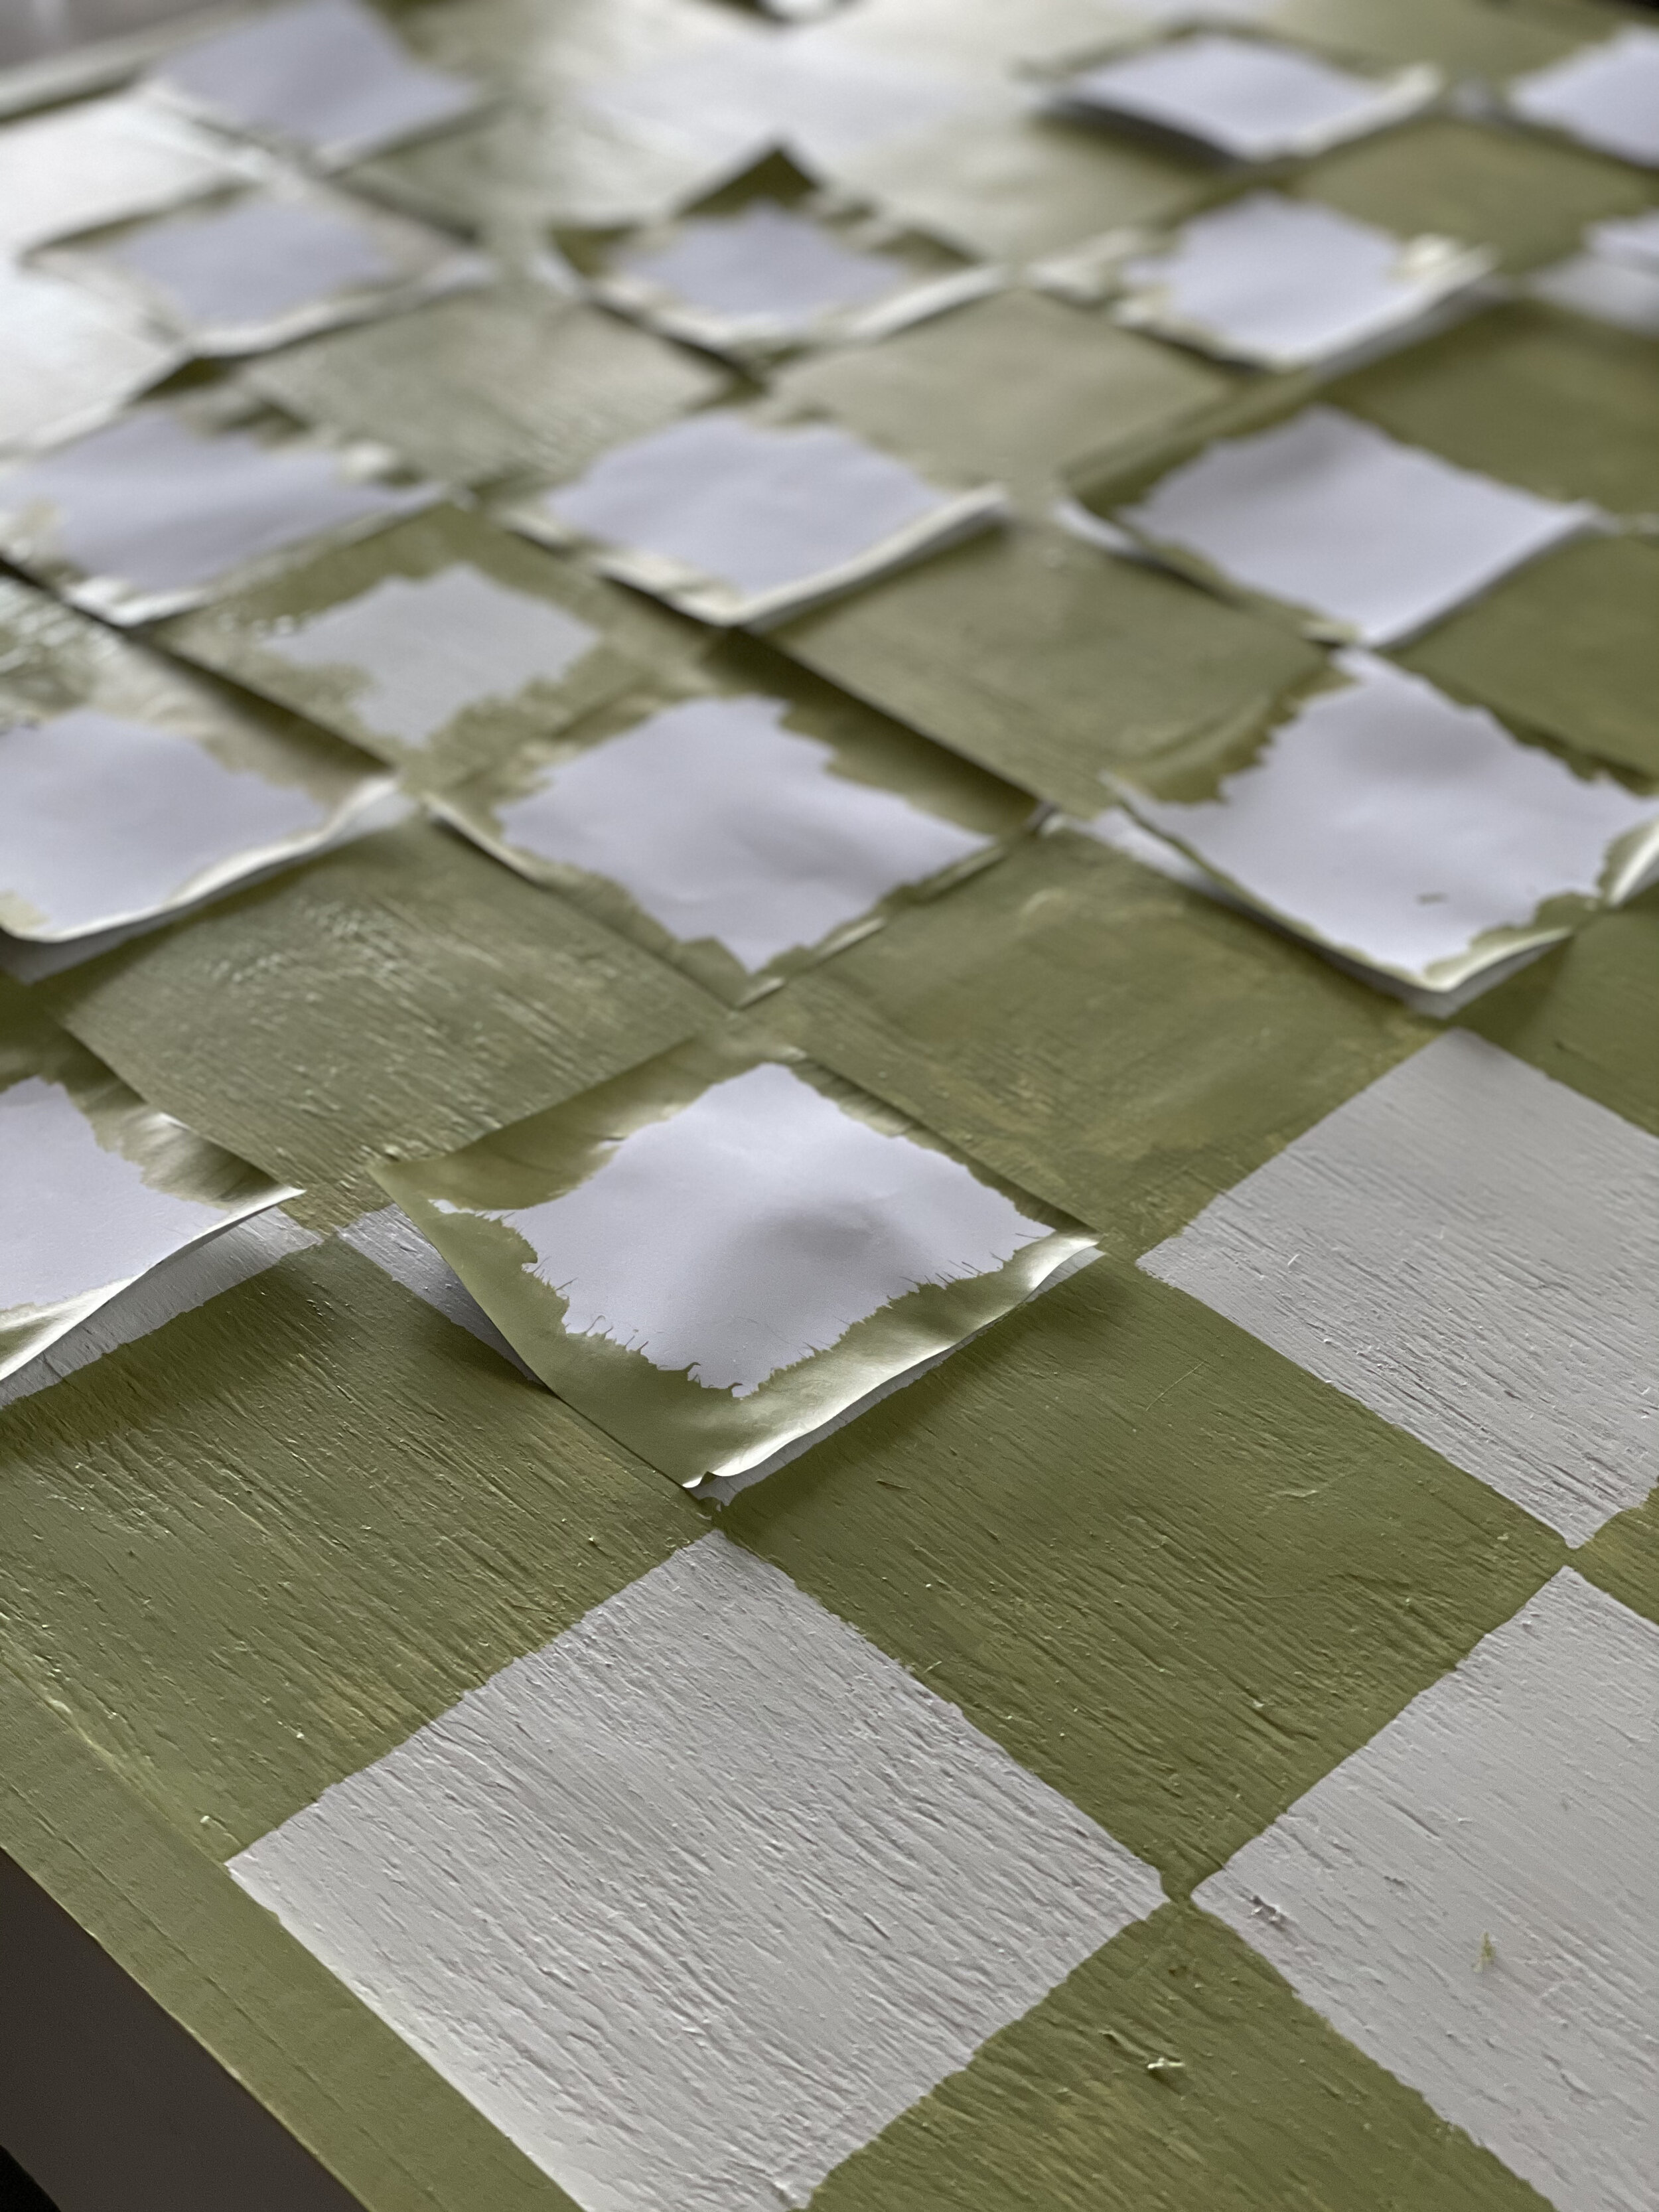 Using post its to paint checkerboard pattern